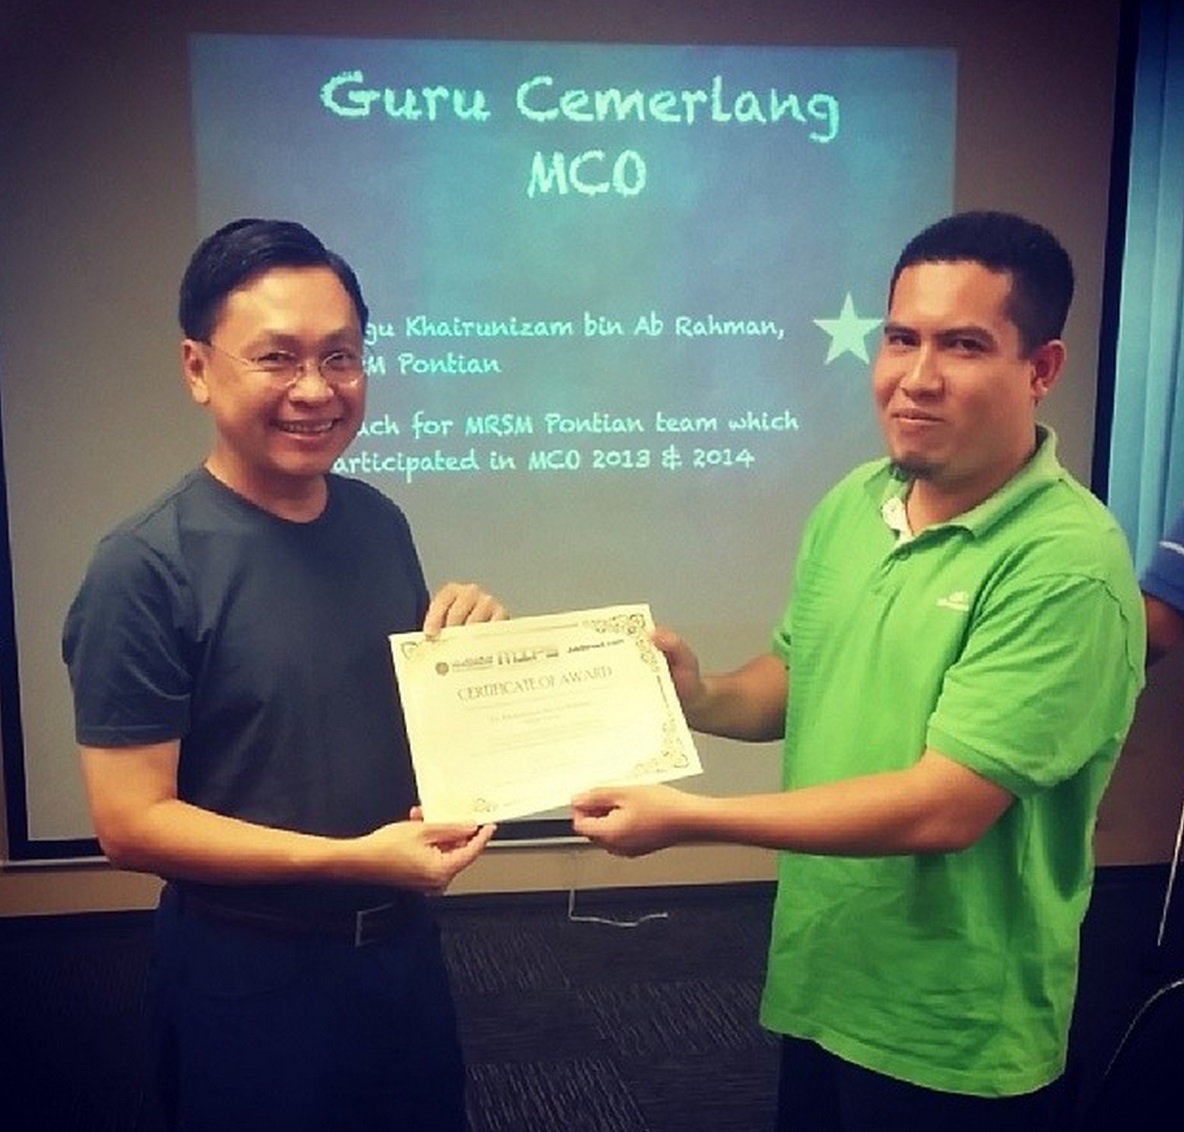 Mr Mark Chang presenting Cikgu Khairunizam from MRSM Pontian with the 'Guru Cemerlang MCO' award.